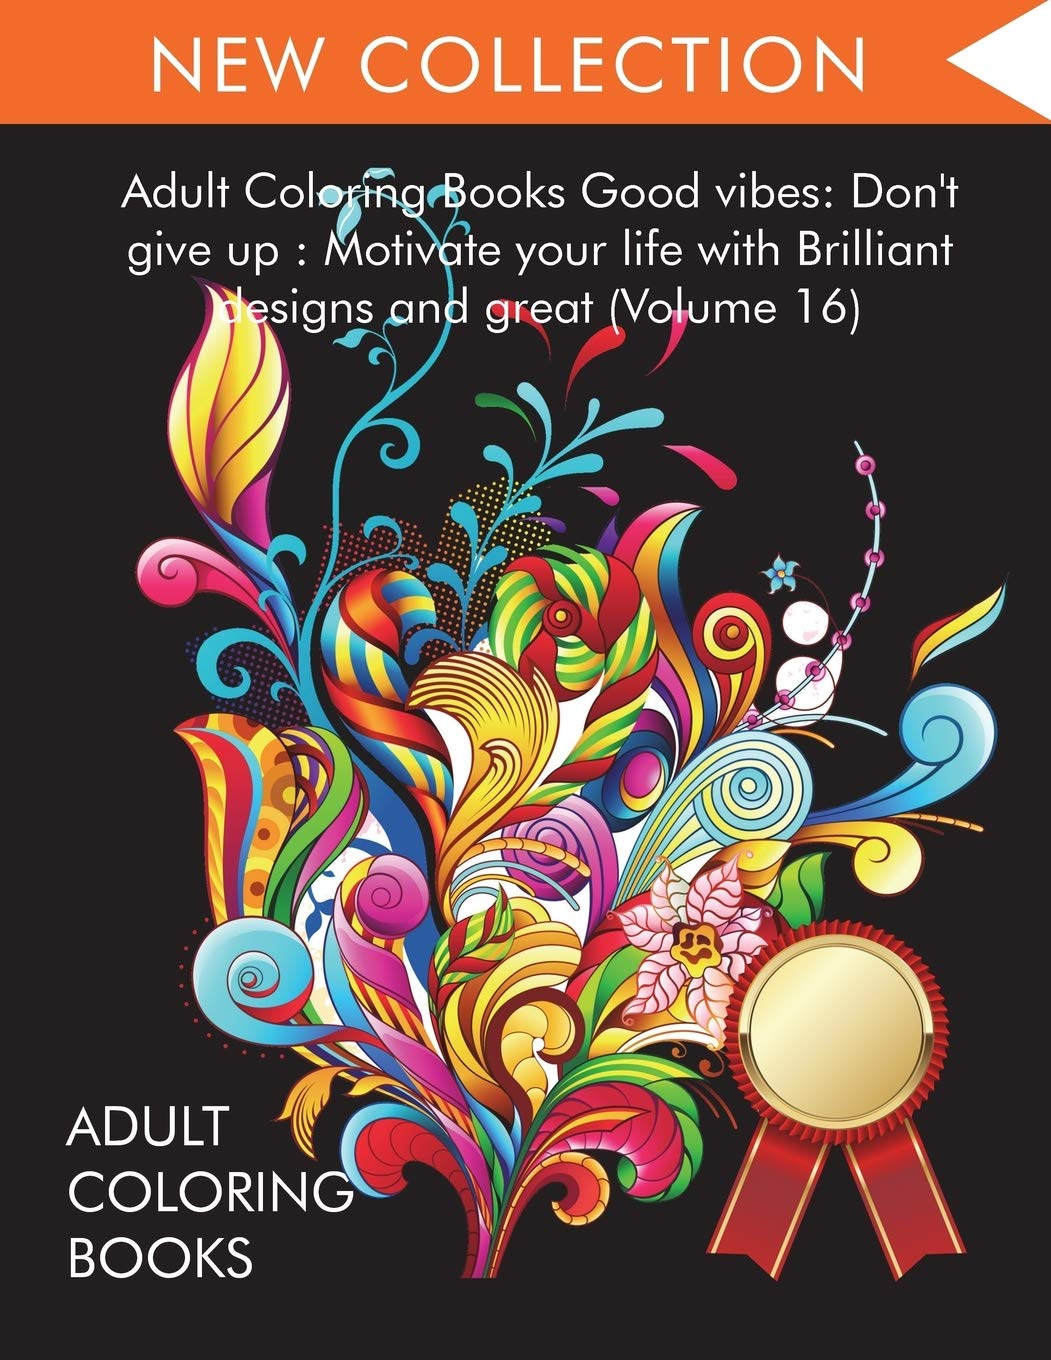 Amazon.com: Adult Coloring Books Good vibes: Dont give up : Motivate your  life with Brilliant designs and great (Volume 16) (9781945260933): Adult  Coloring Books, Coloring Books for Adults Relaxation, Coloring Books for